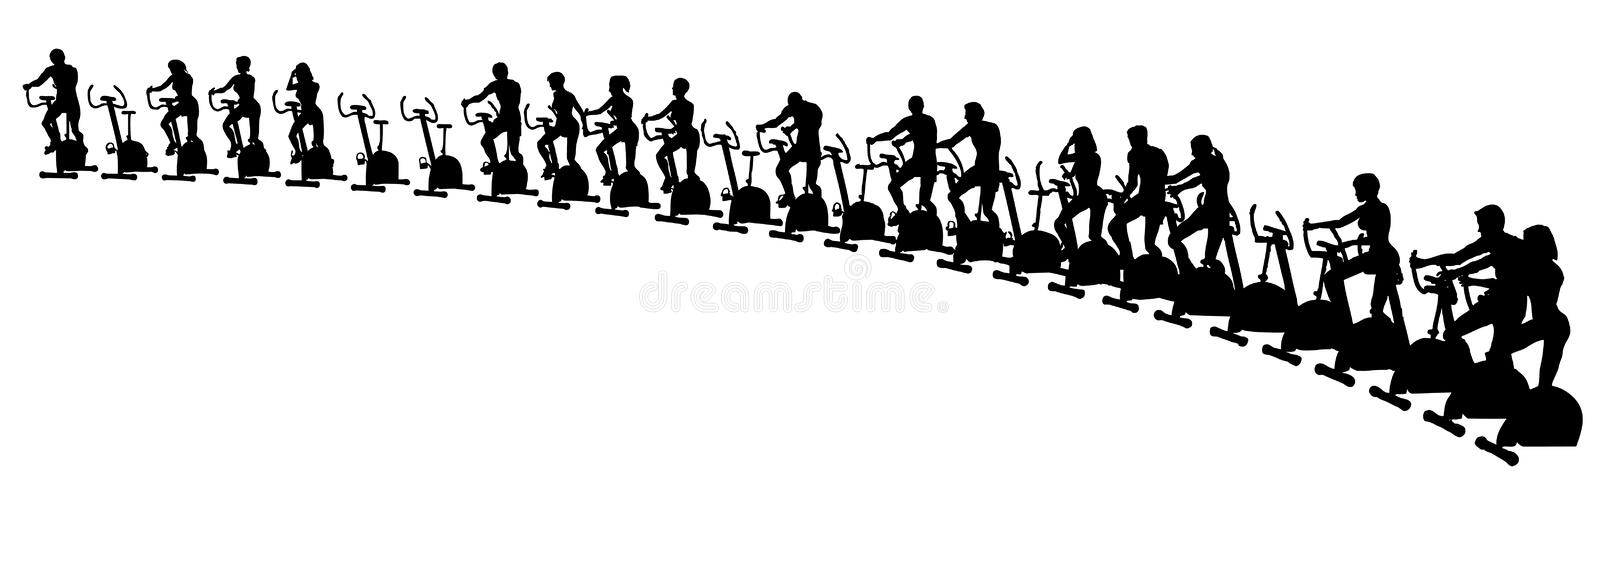 Download Exercise bikes stock vector. Image of fitness, design - 9026570